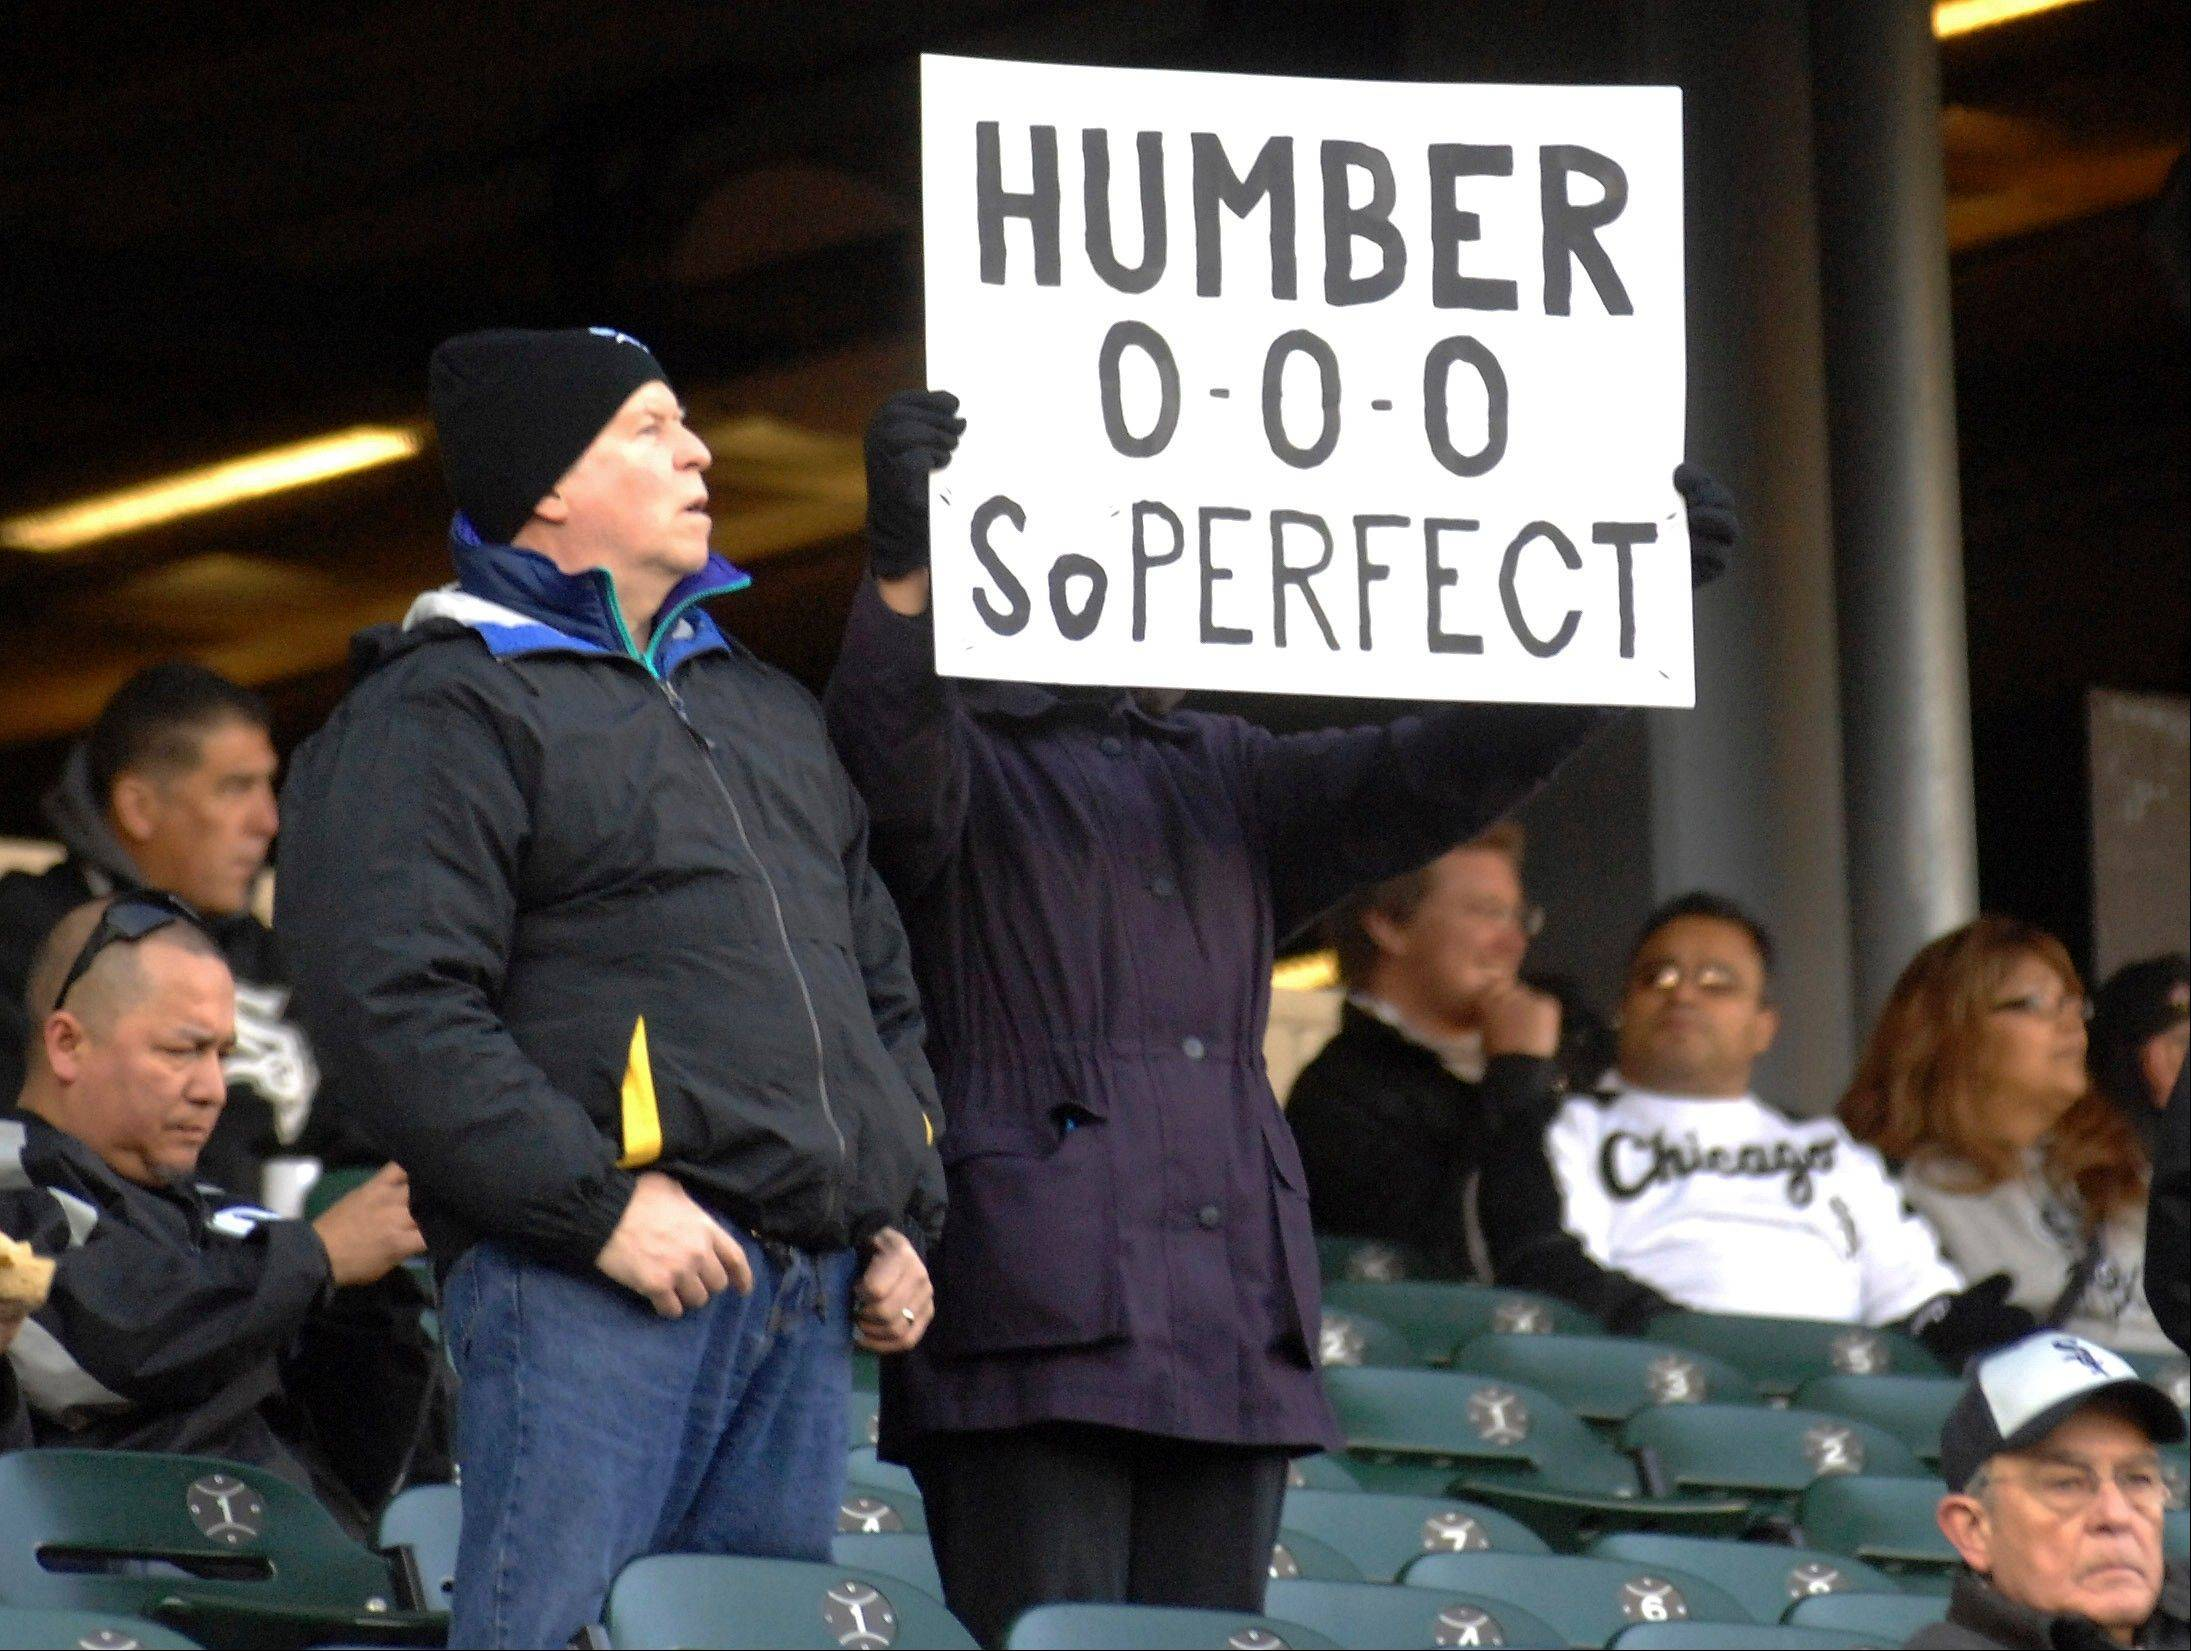 A fan holds up a sign honoring Chicago White Sox starting pitcher Philip Humber's recent perfect game, before the White Sox's baseball game against the Boston Red Sox on Thursday, April 26, 2012, in Chicago.